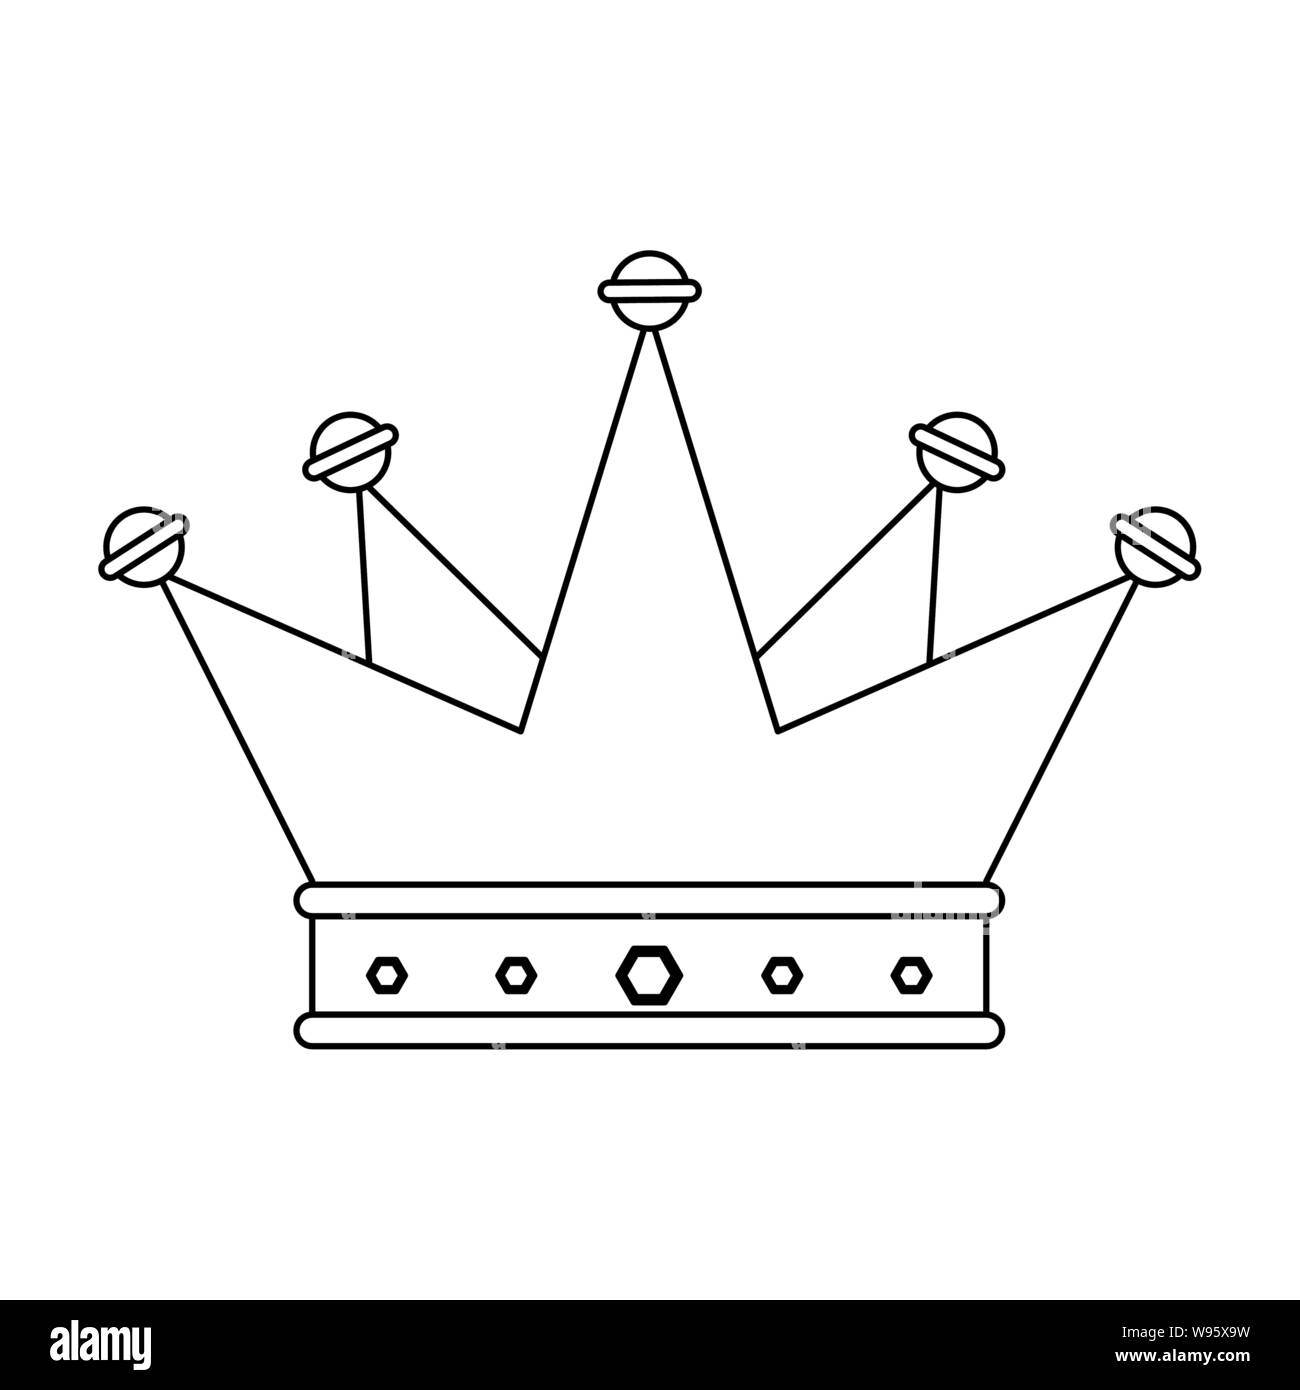 Crown King Luxury Jewel Cartoon In Black And White Stock Vector Image Art Alamy Looking for cartoon king crown psd free or illustration? https www alamy com crown king luxury jewel cartoon in black and white image263817845 html